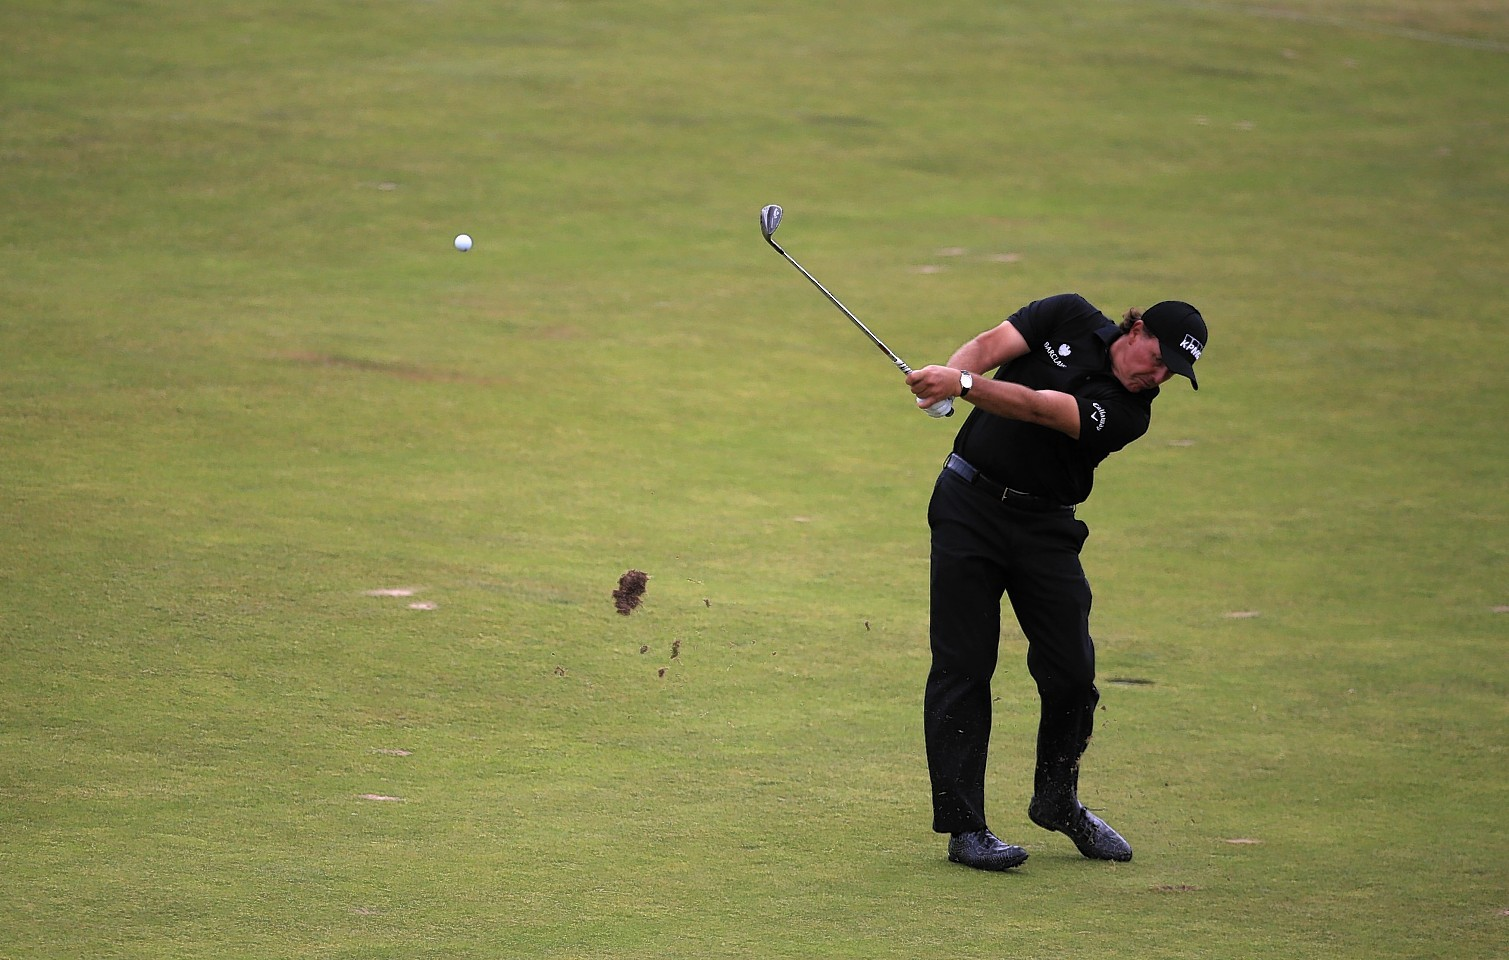 Phil Mickelson playing at The Open on Sunday